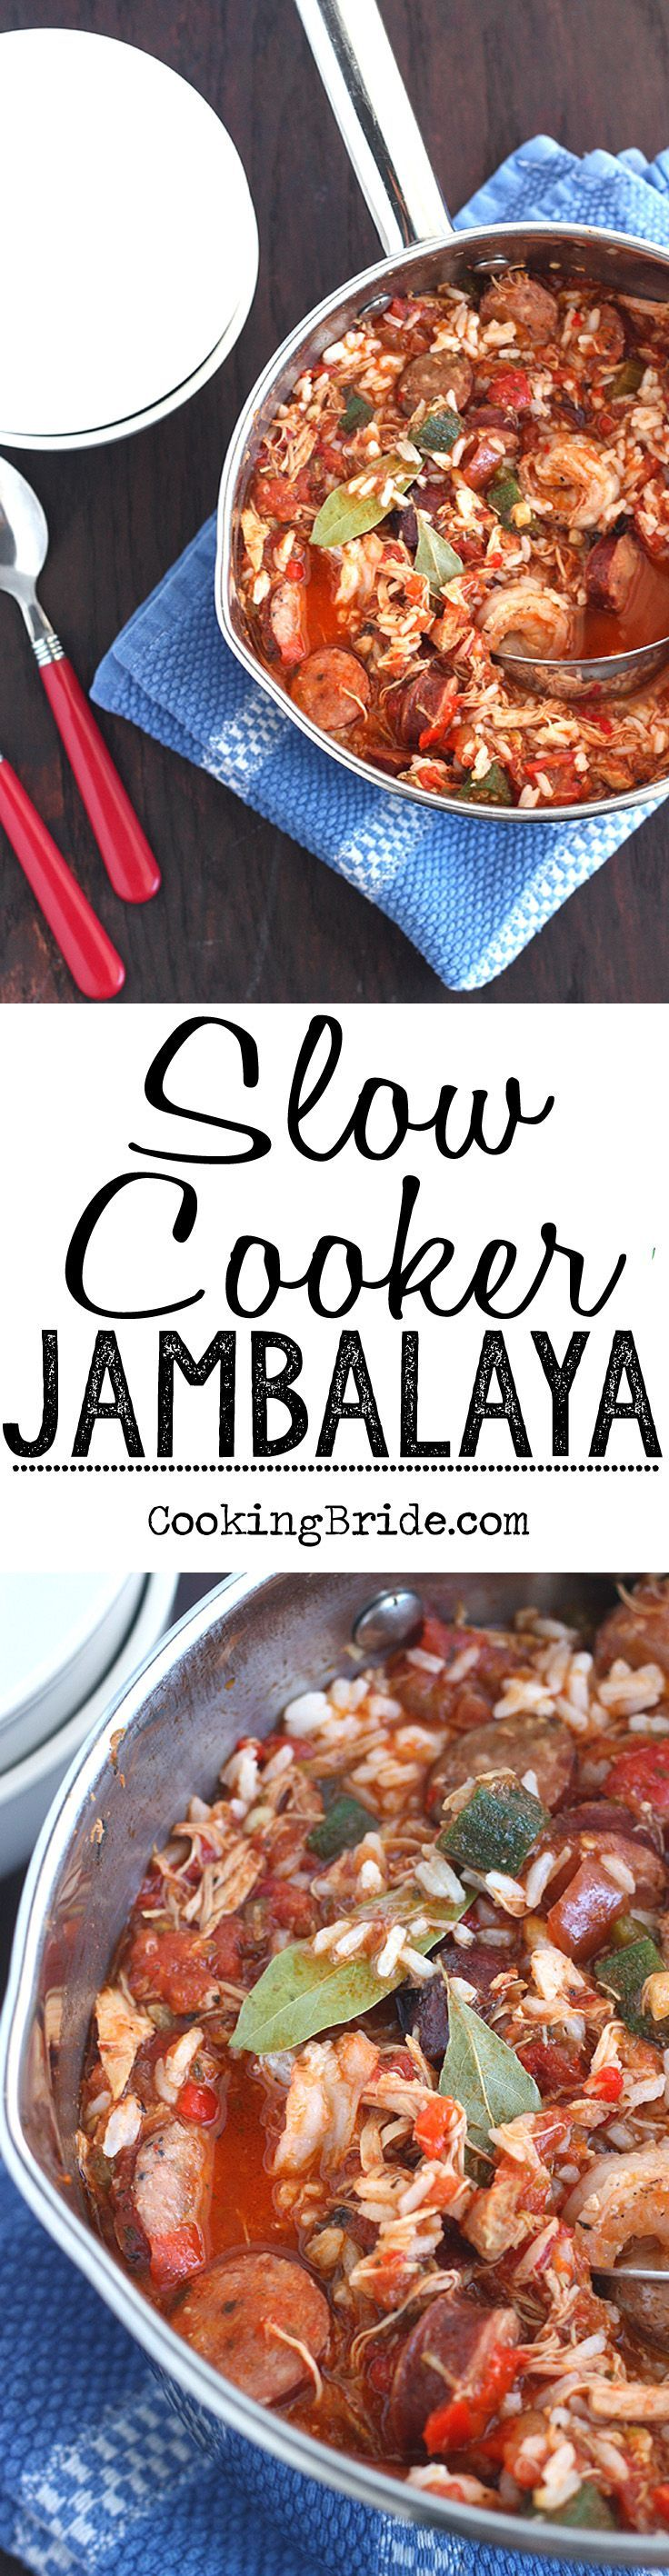 Recipe for hearty slow cooker jambalaya. Chicken, spicy andouille sausage, and shrimp simmered in a slow cooker and served over rice. #Jambalaya